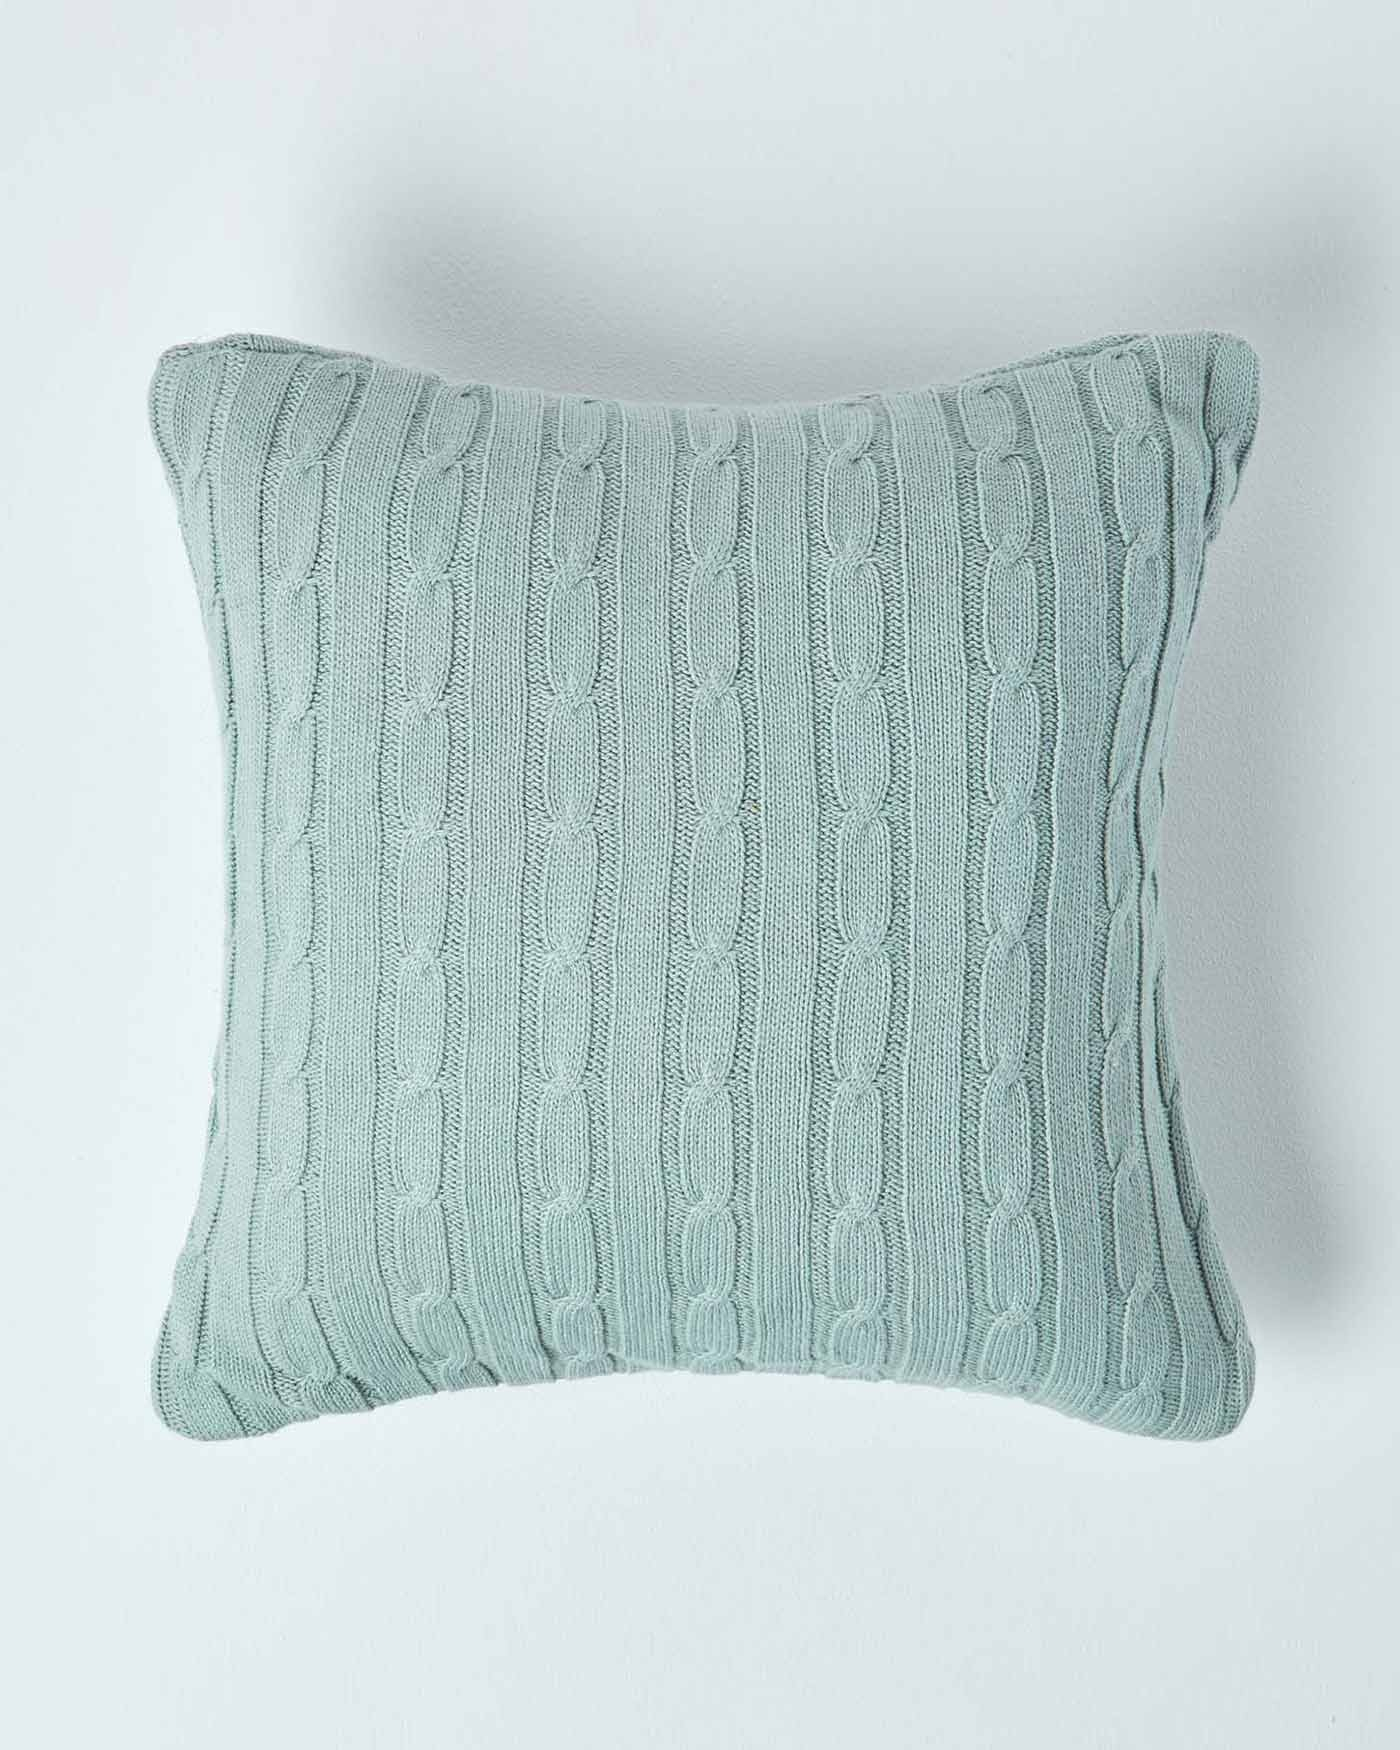 Knitting Pattern For Cushion Cover With Cables Cotton Cable Knit Cushion Covers